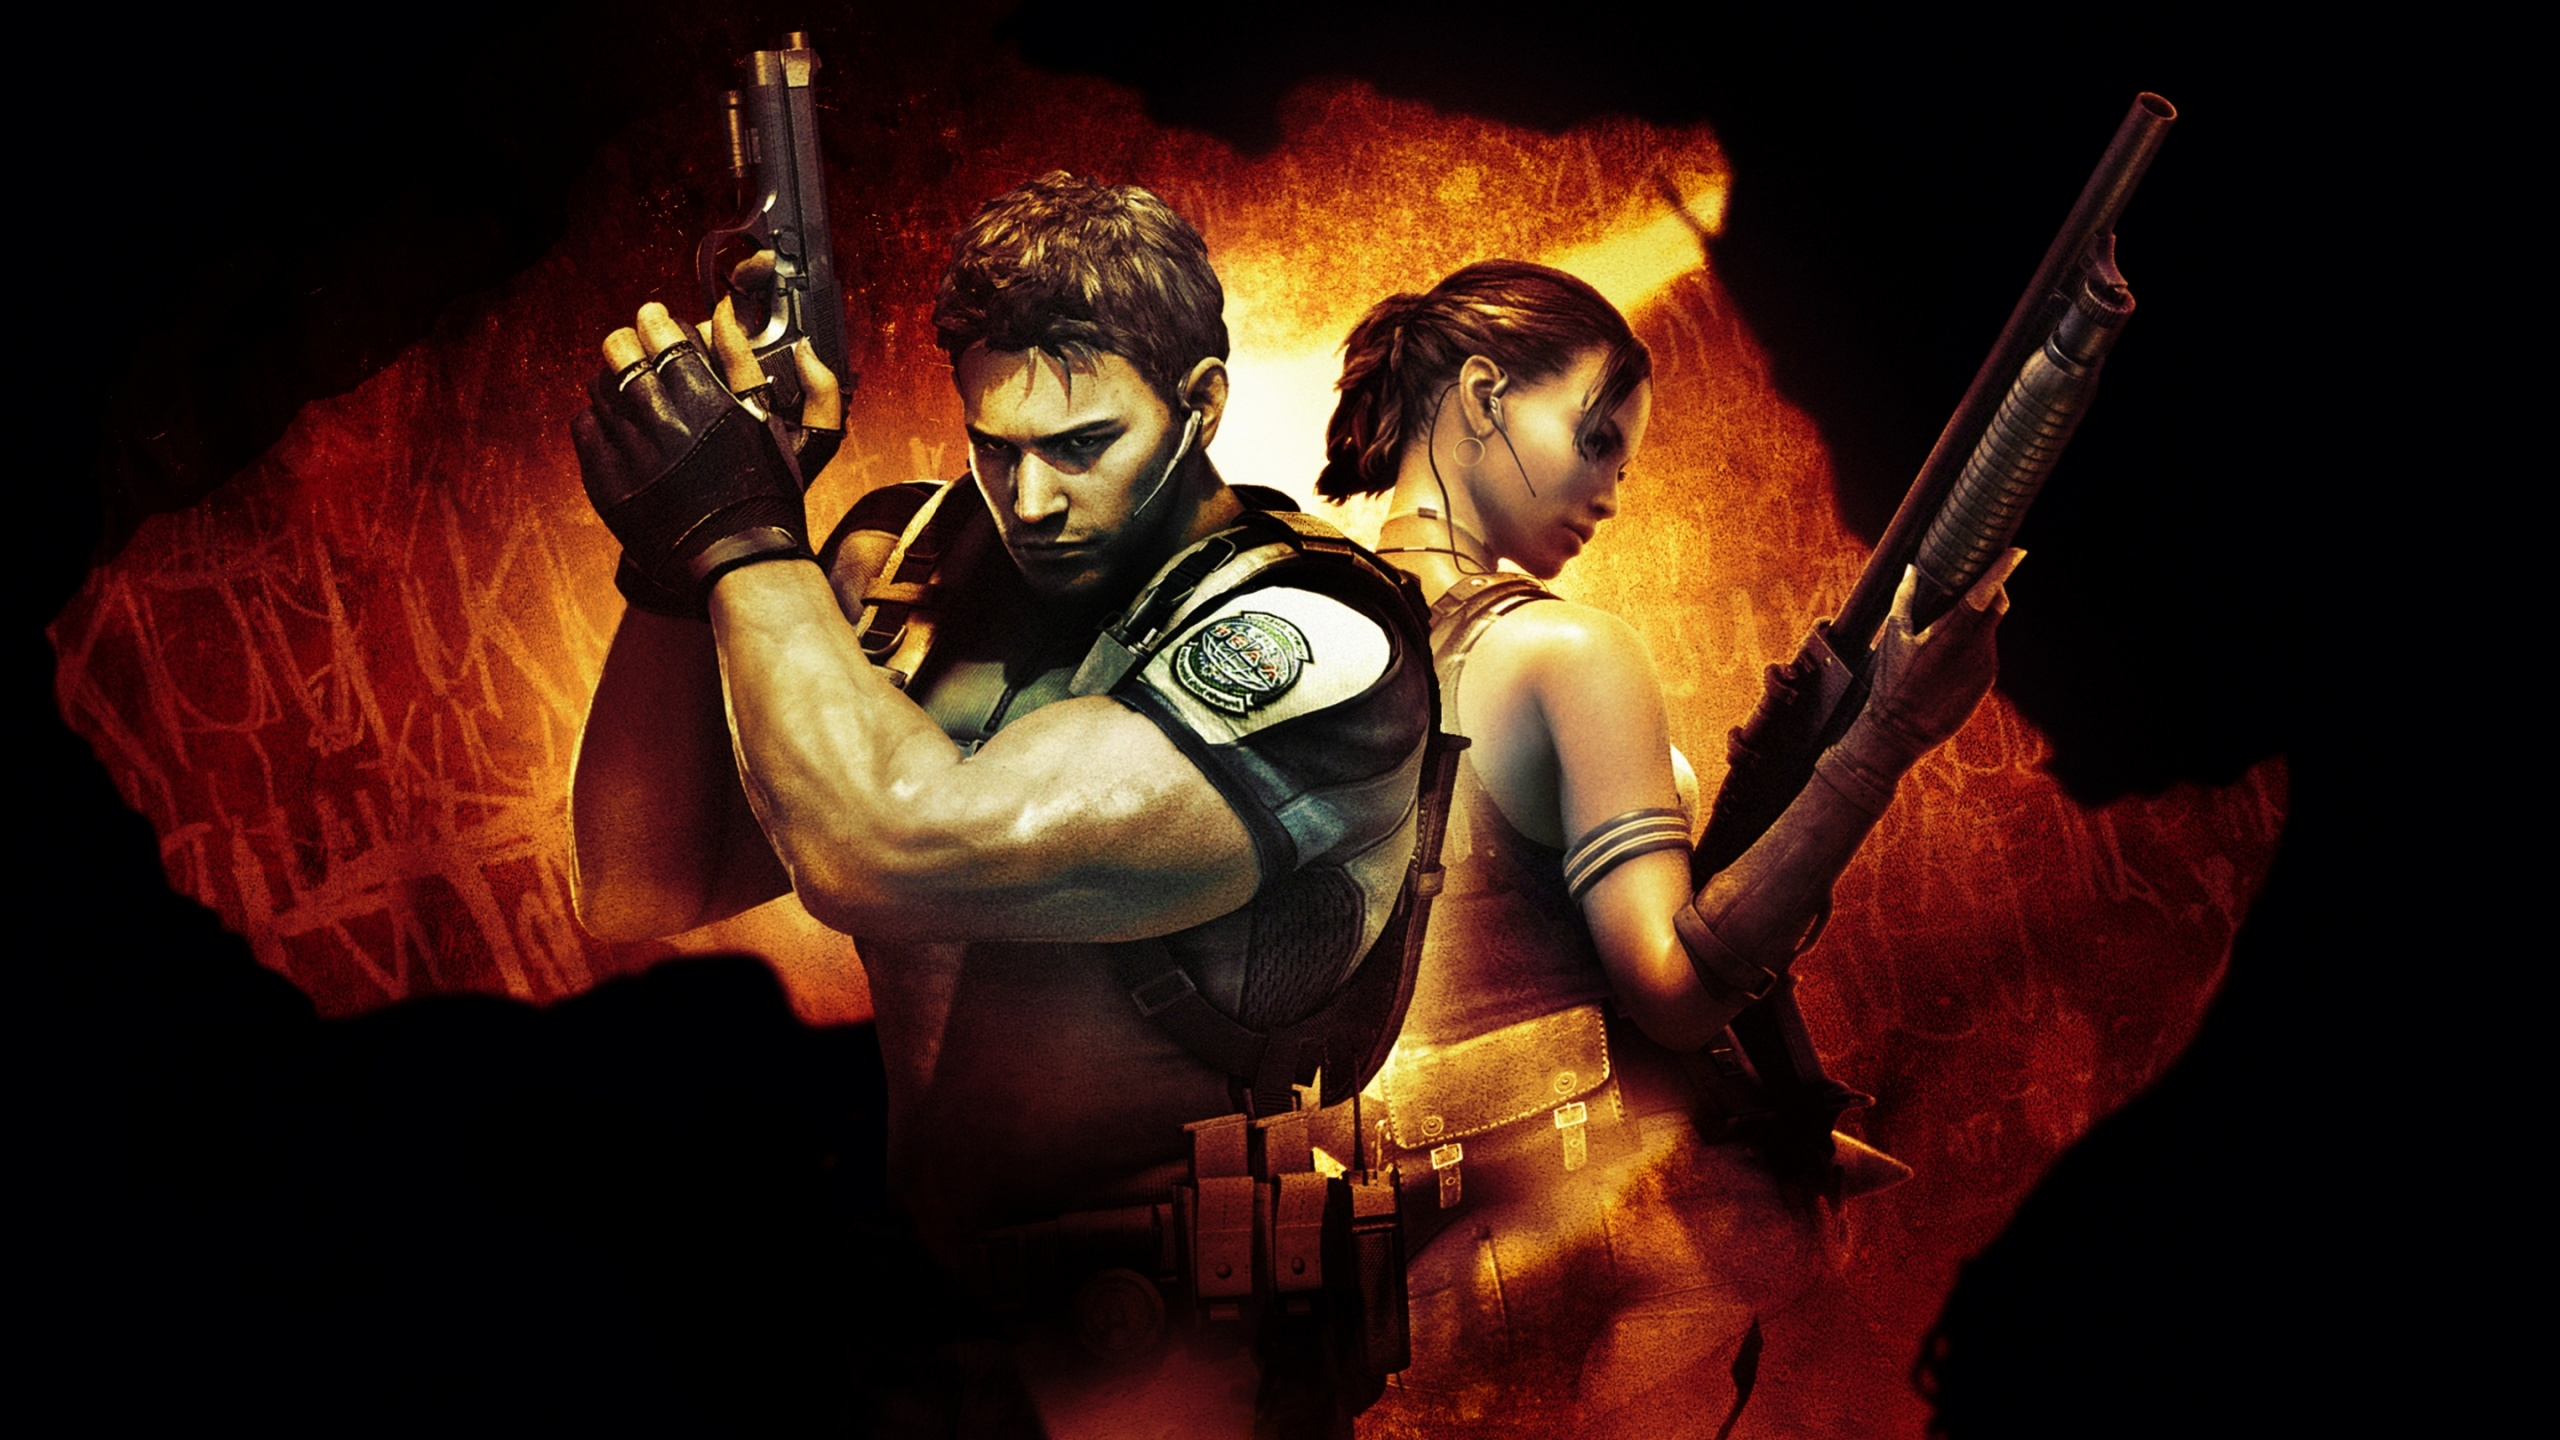 Chris And Sheva Resident Evil 5